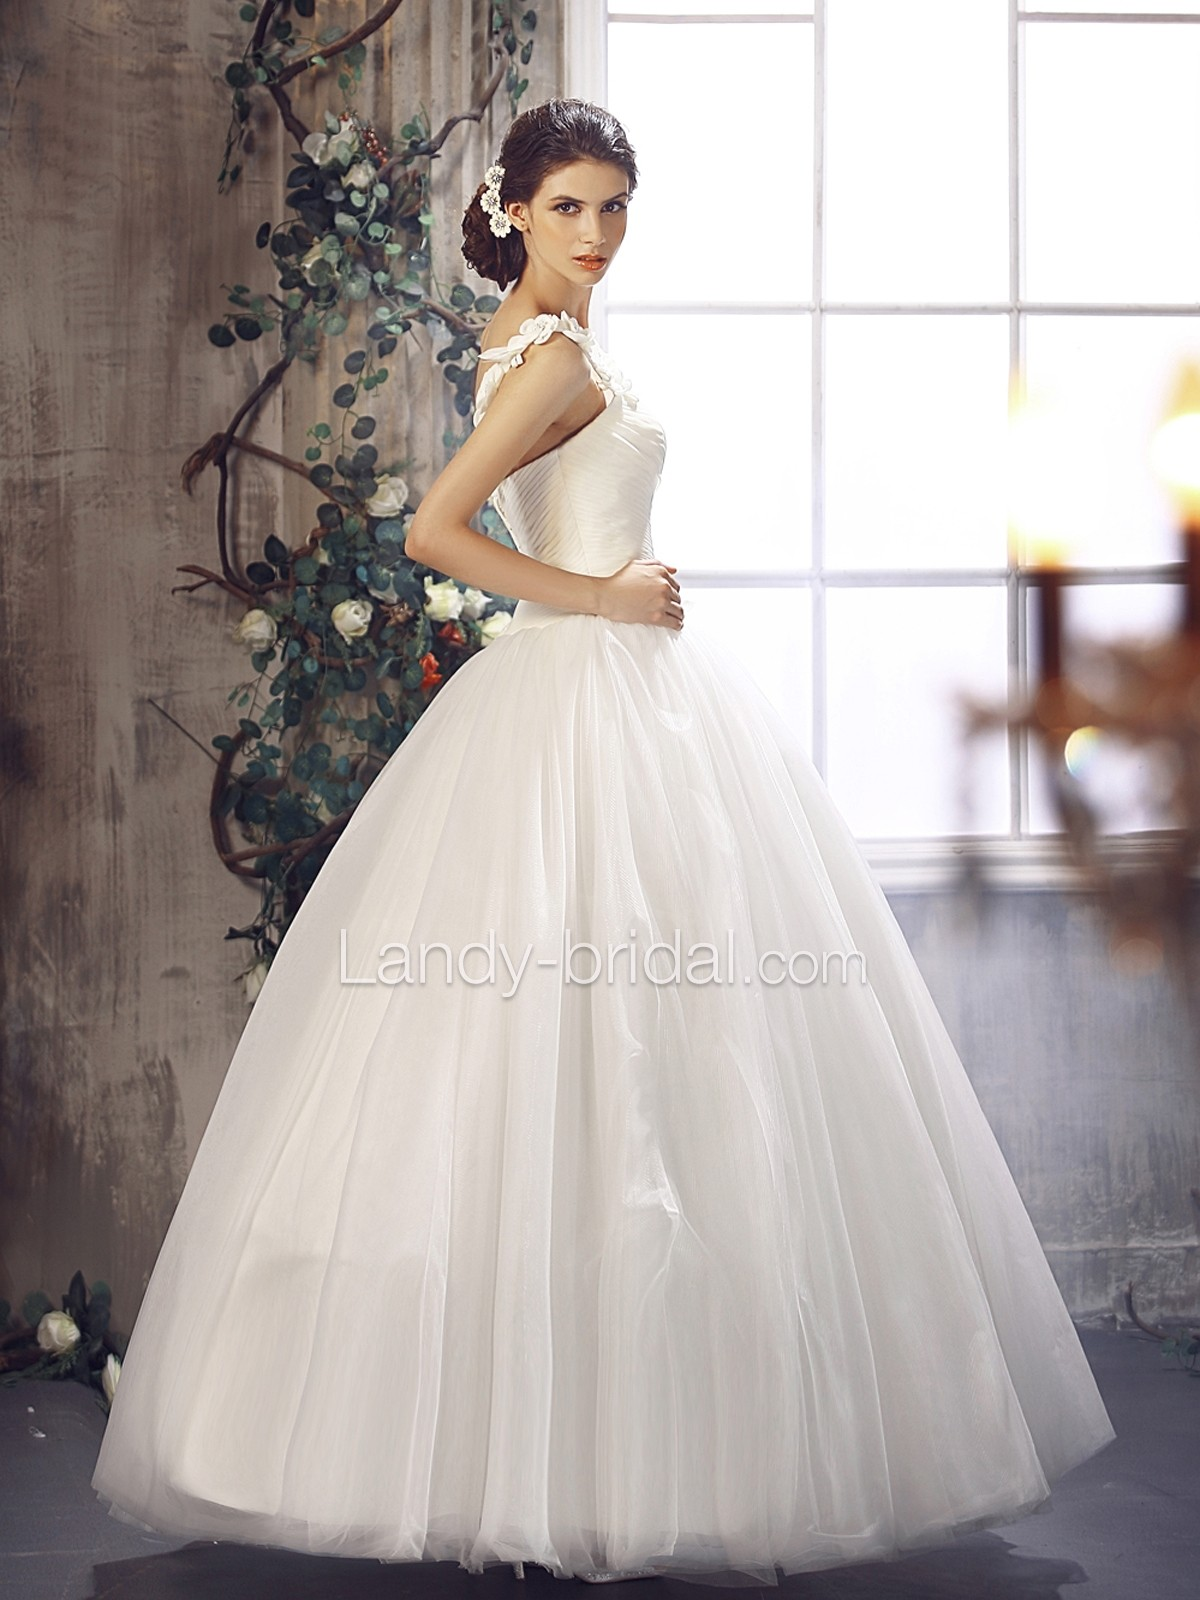 Department Store Wedding Dresses - Flower Girl Dresses